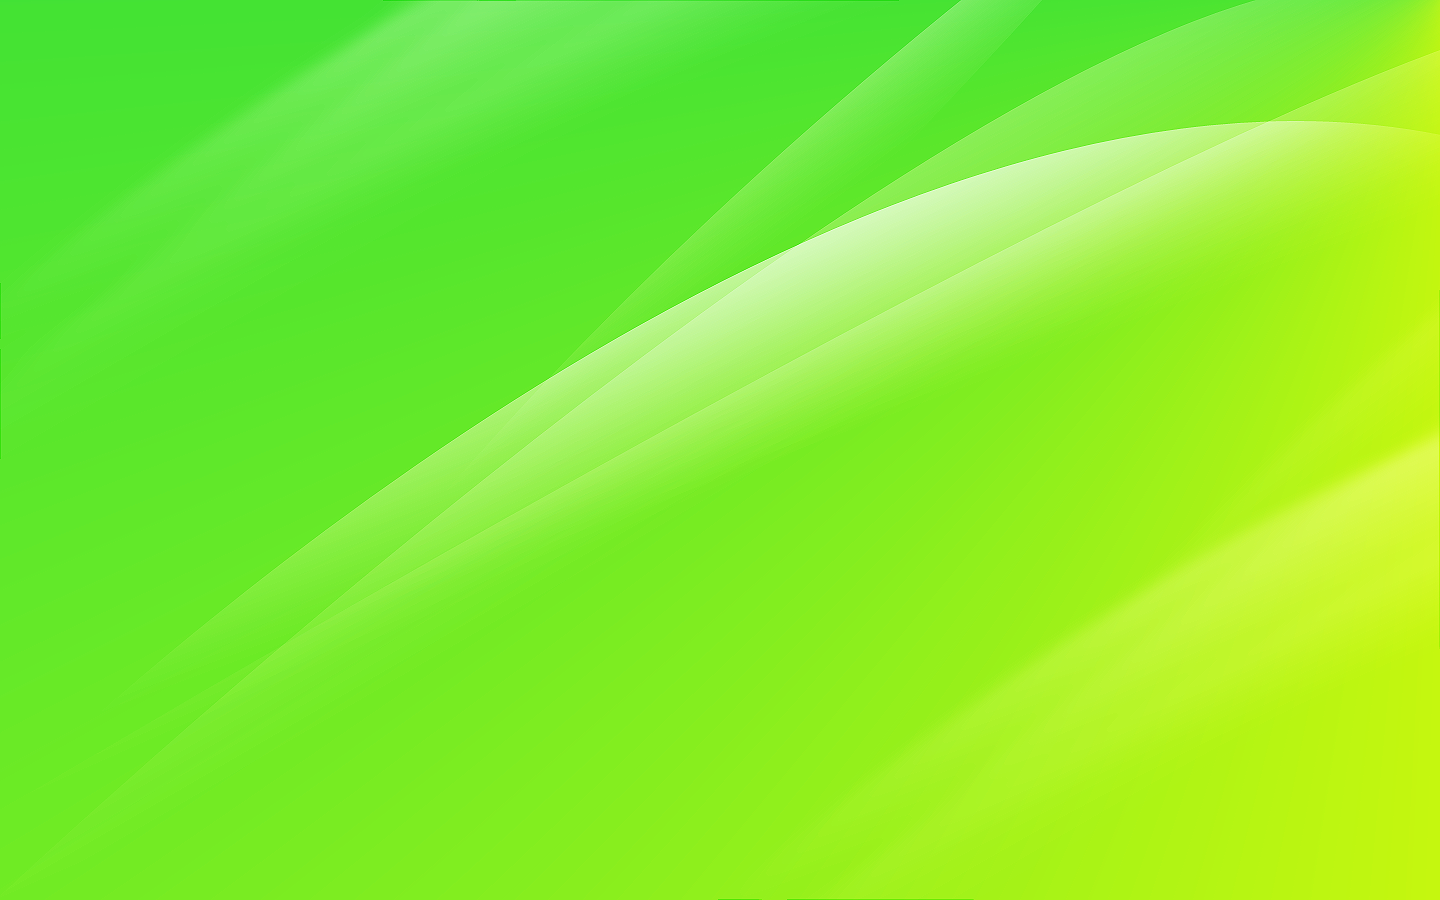 Free download light green wallpaper HD [1440x900] for your ...